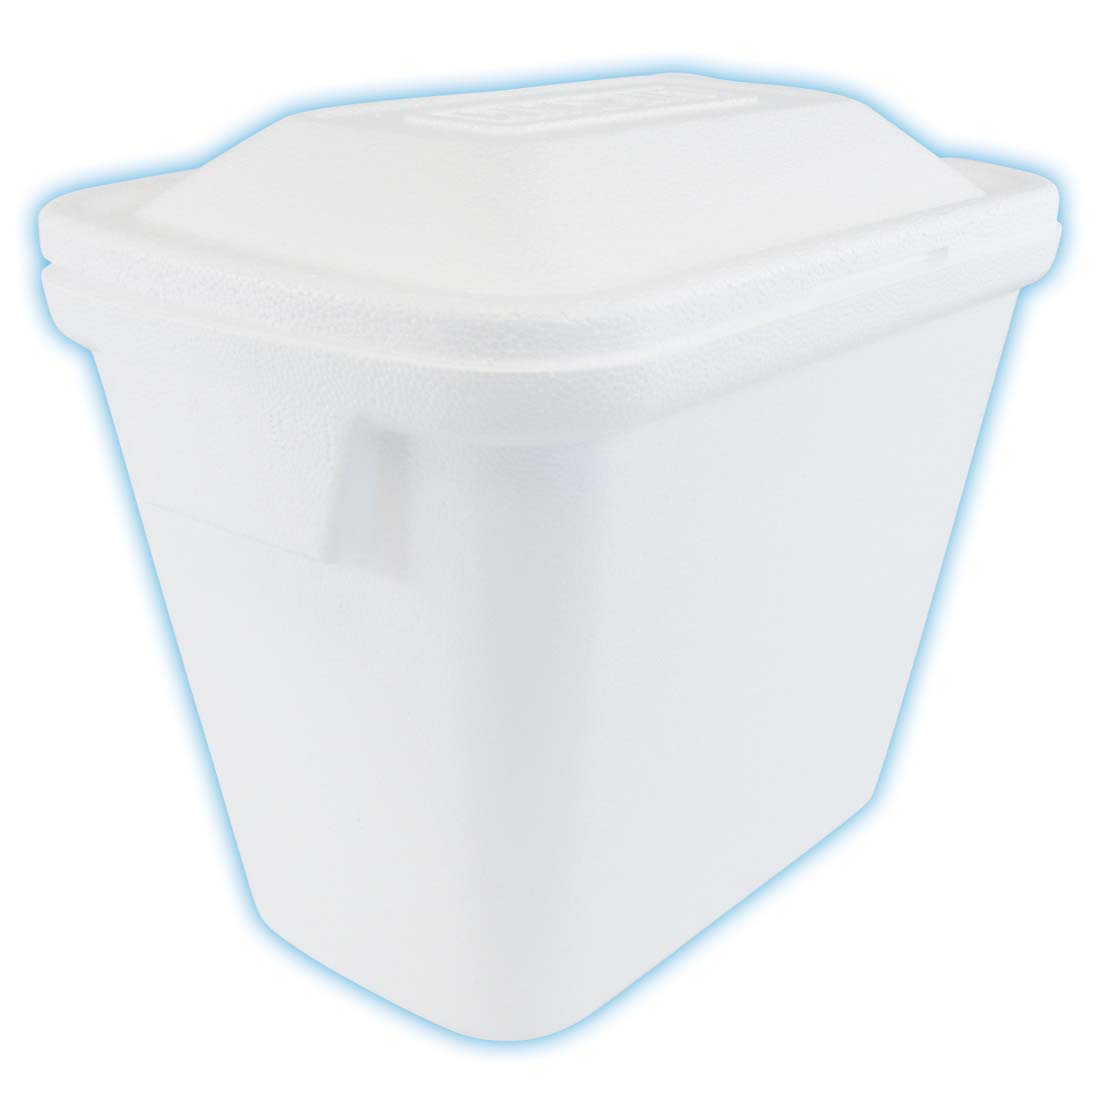 "View STYROFOAM COOLER 17"" X 12"" X 14 3/8"" HOLDS 24 CANS WHITE"